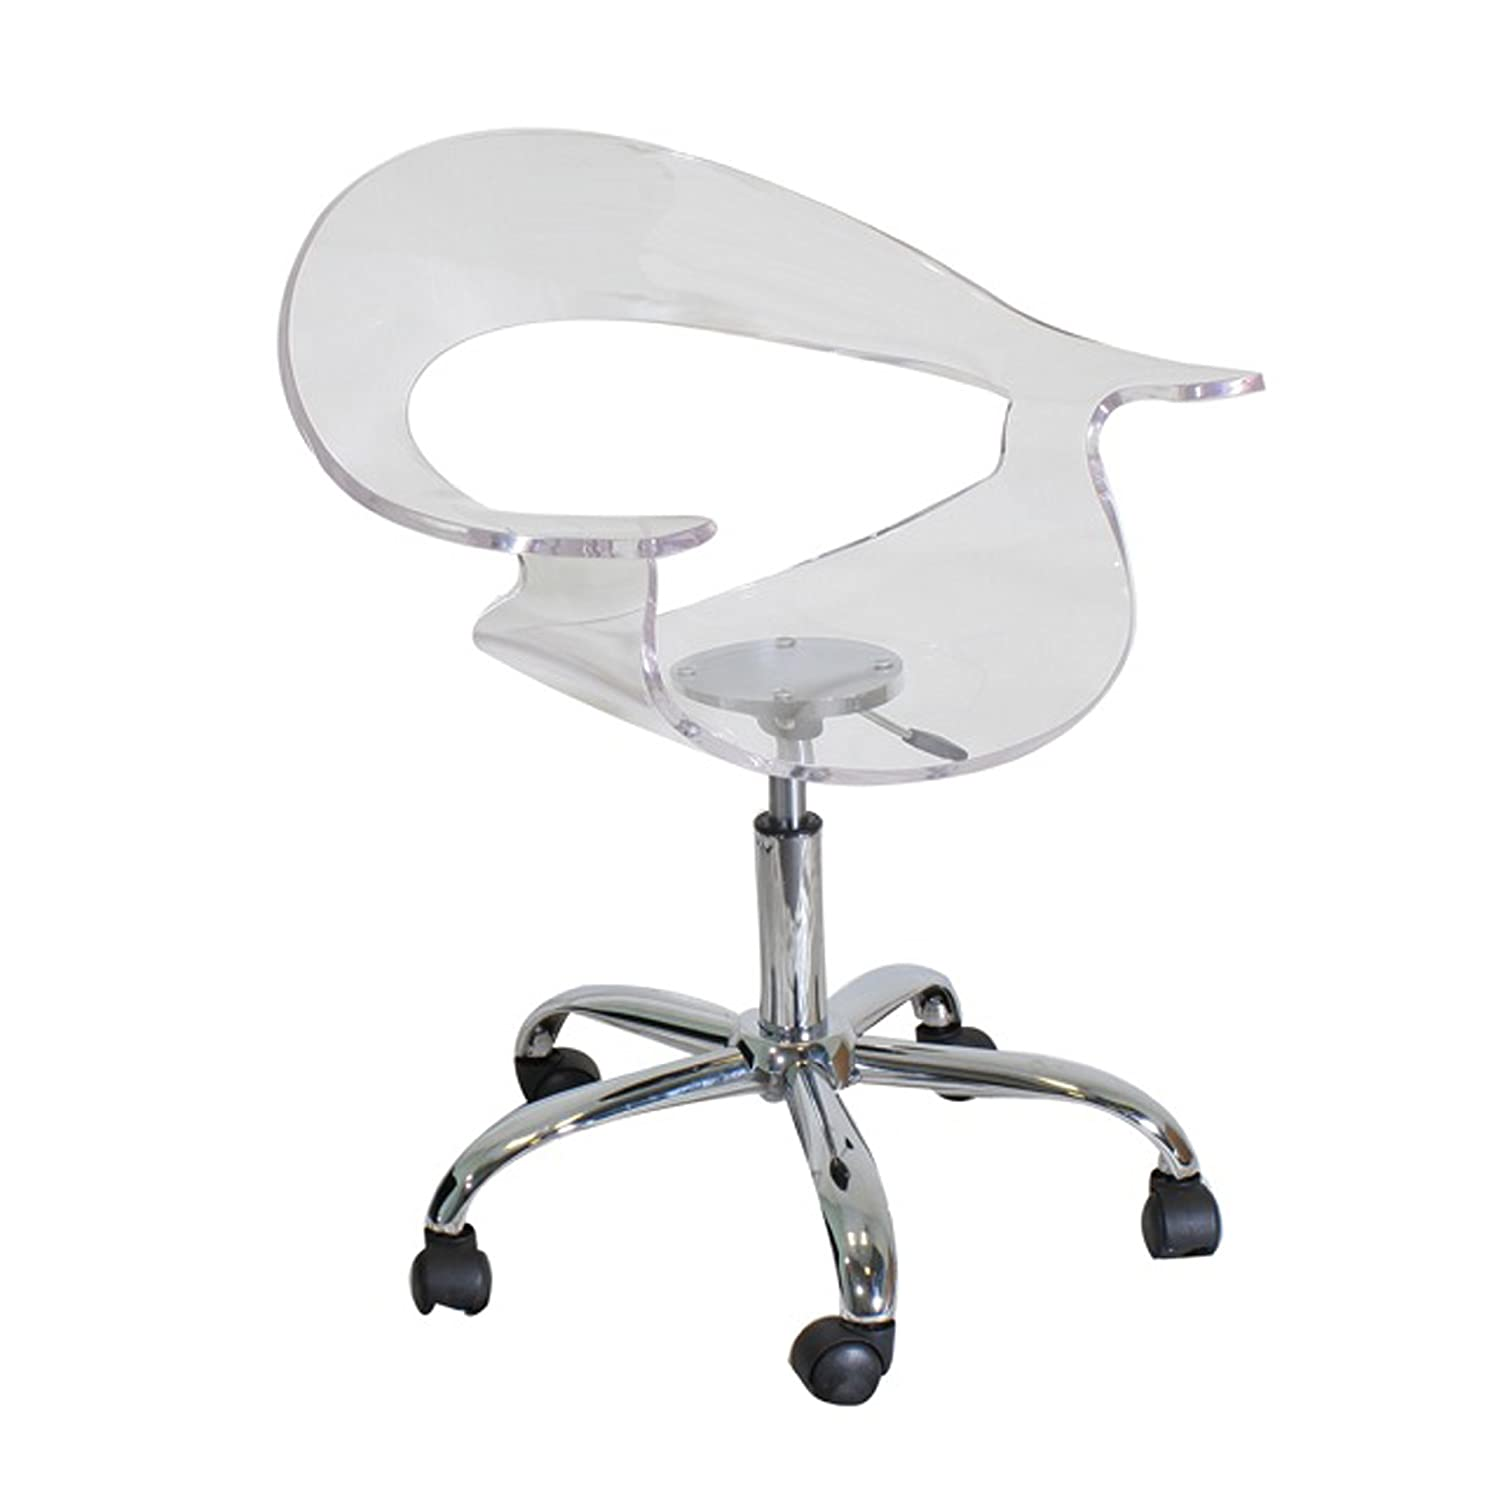 Stupendous Lumisource Rumor Chair Clear Alphanode Cool Chair Designs And Ideas Alphanodeonline